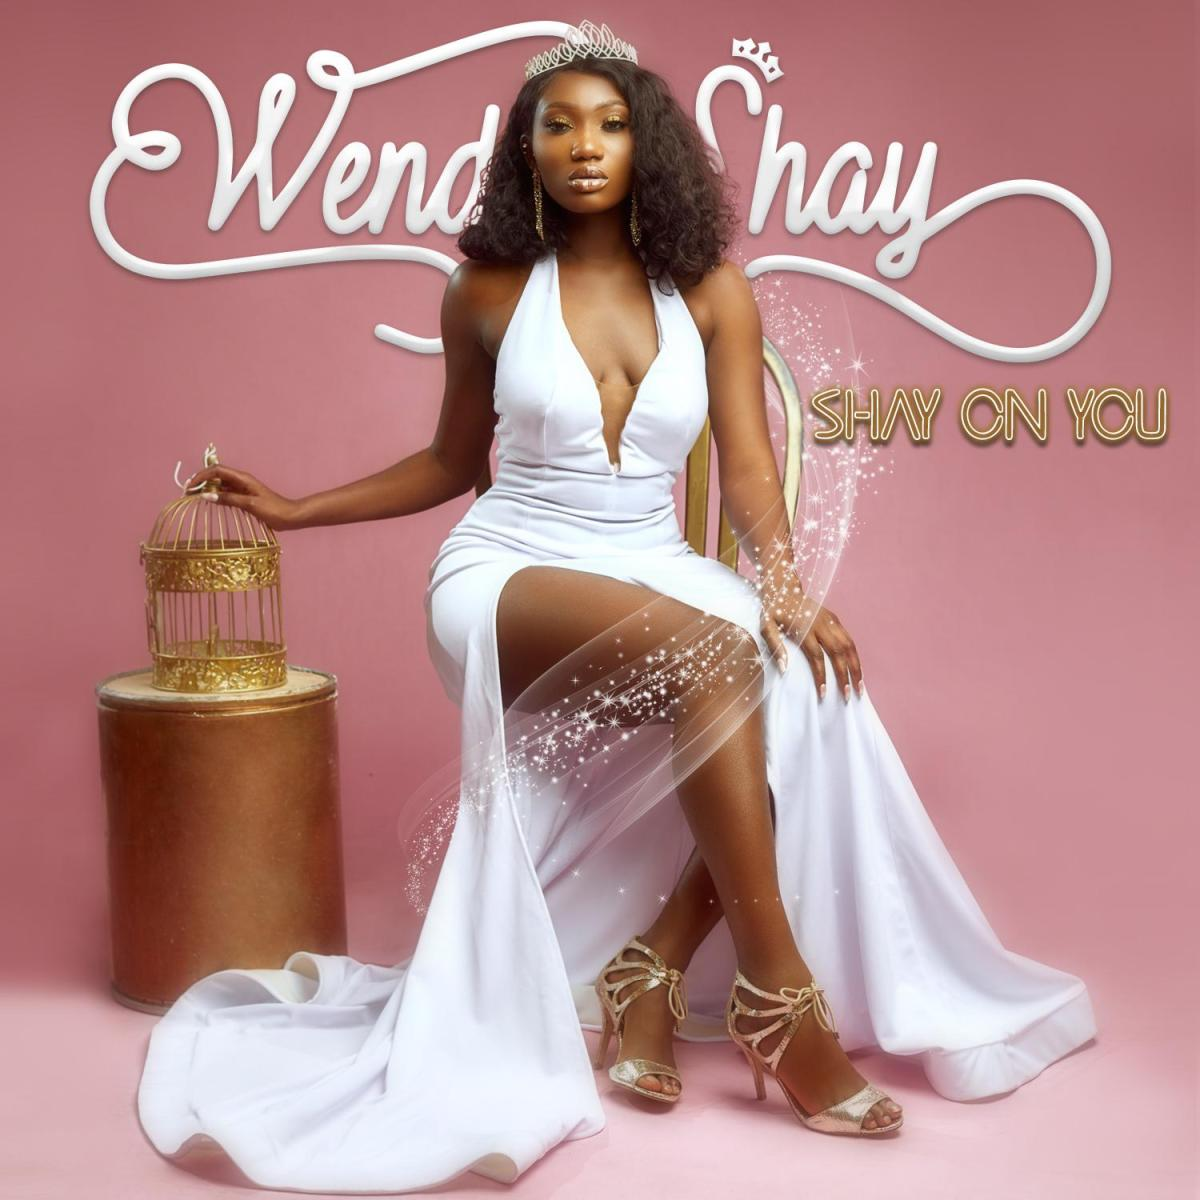 Wendy Shay - Shay On You Album (Album)